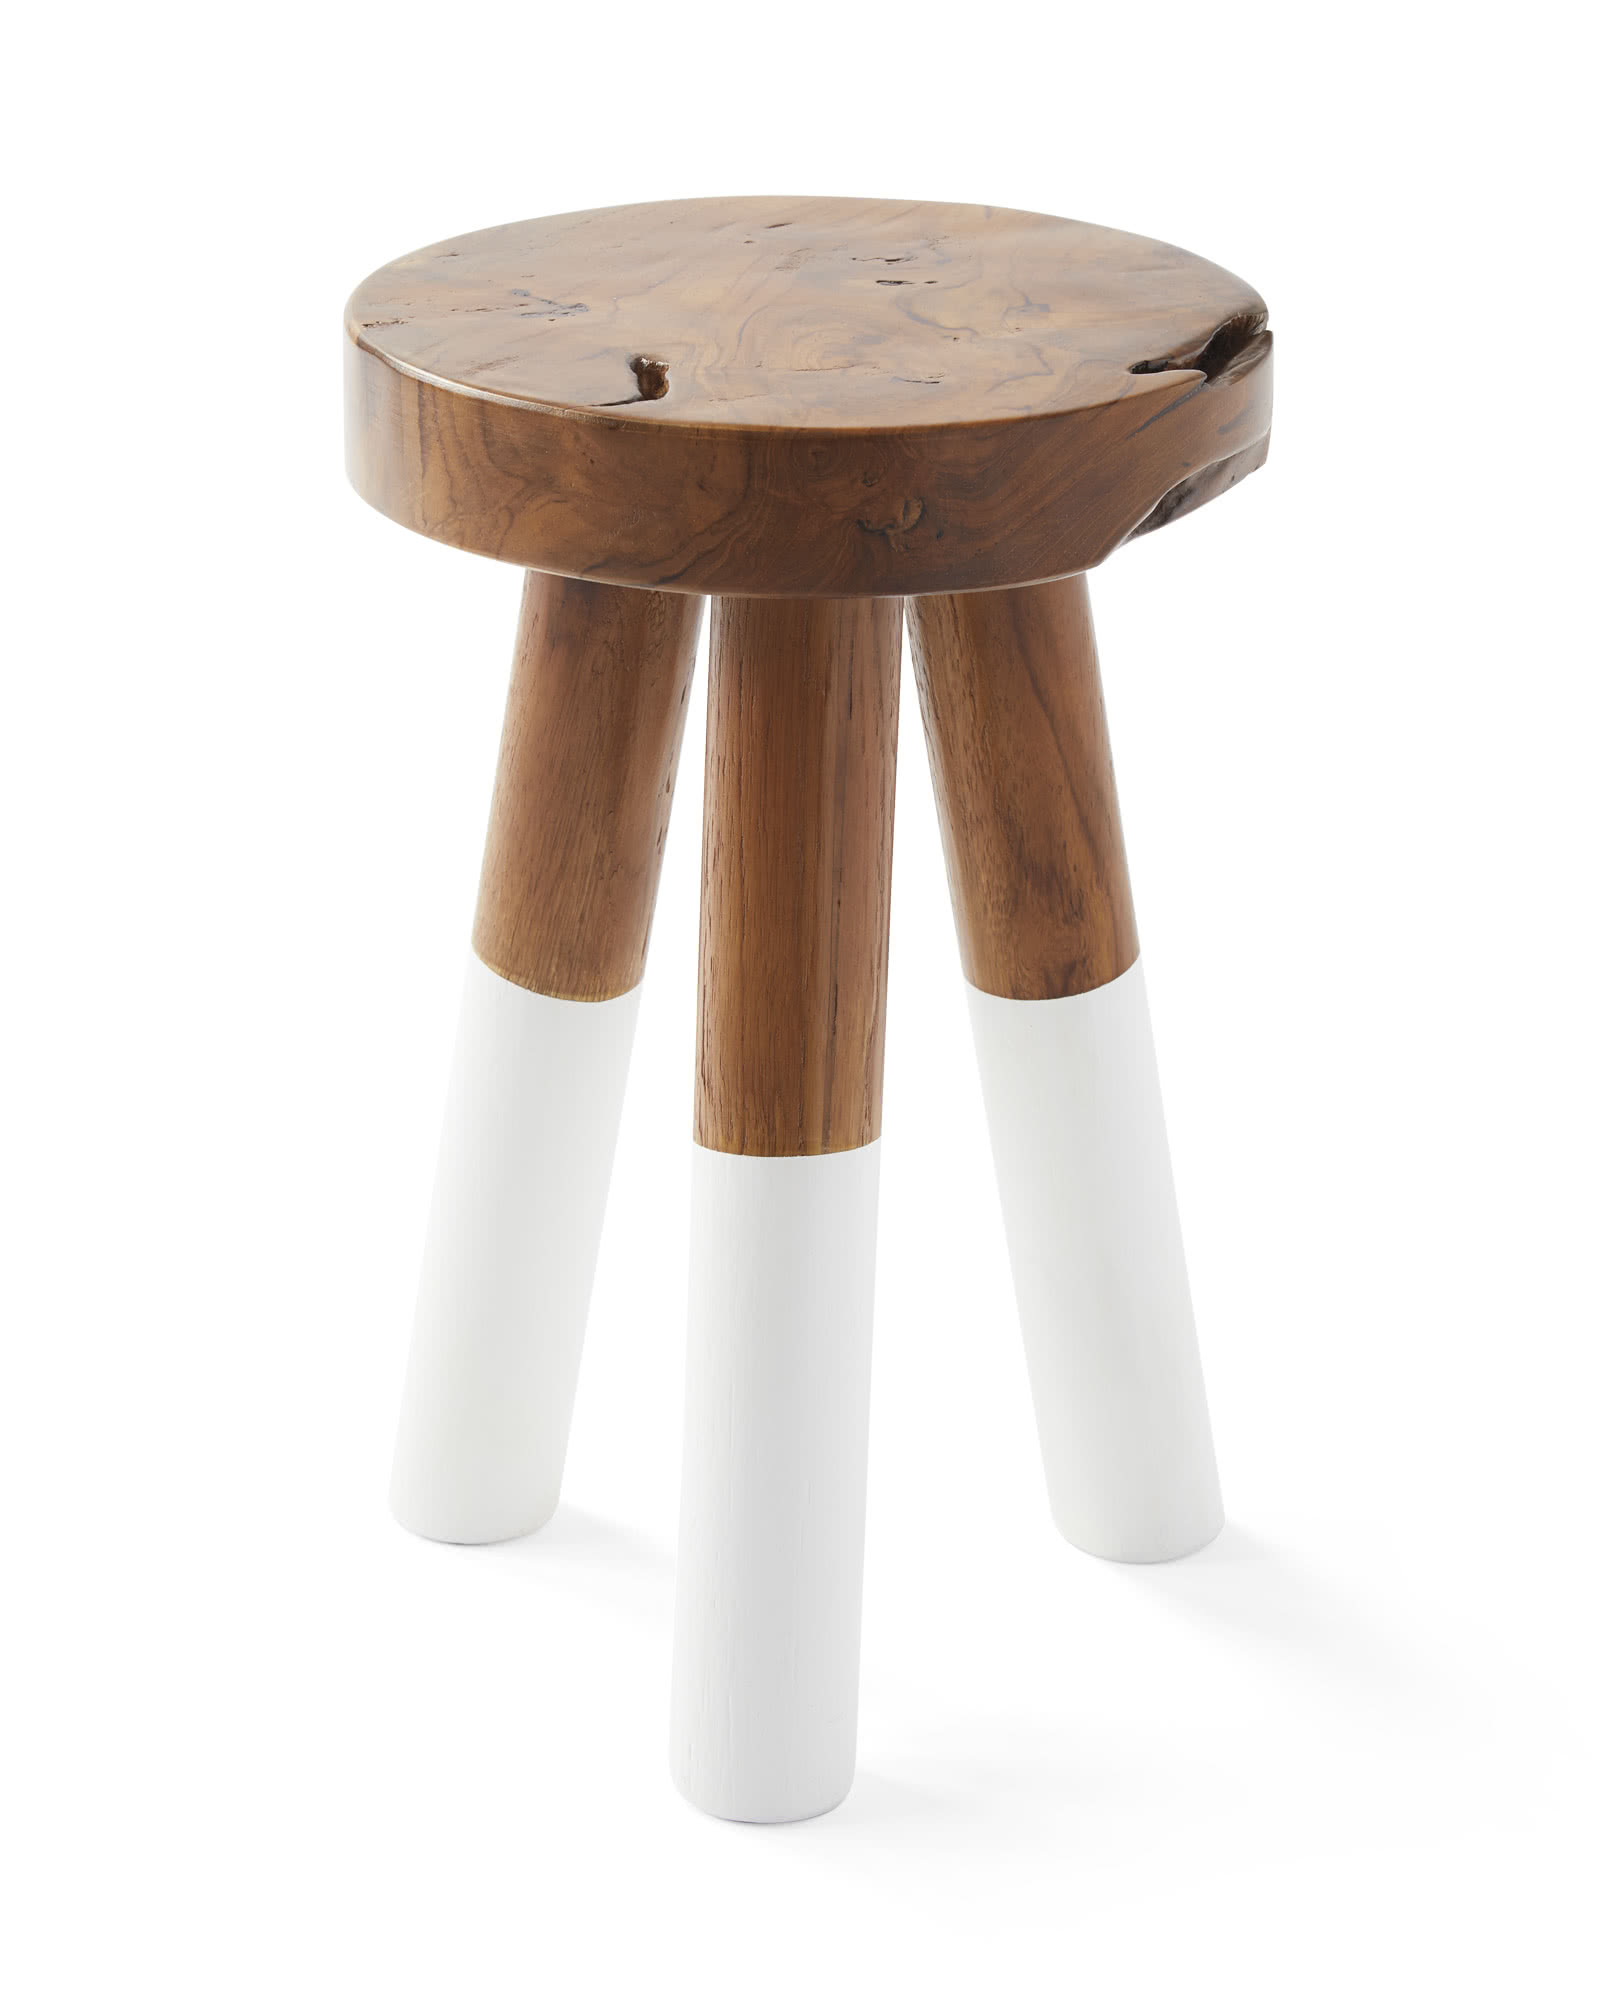 Furn_NEW_Dip_Dyed_Stool_Small_White_MV_0045_Crop_SH.jpg